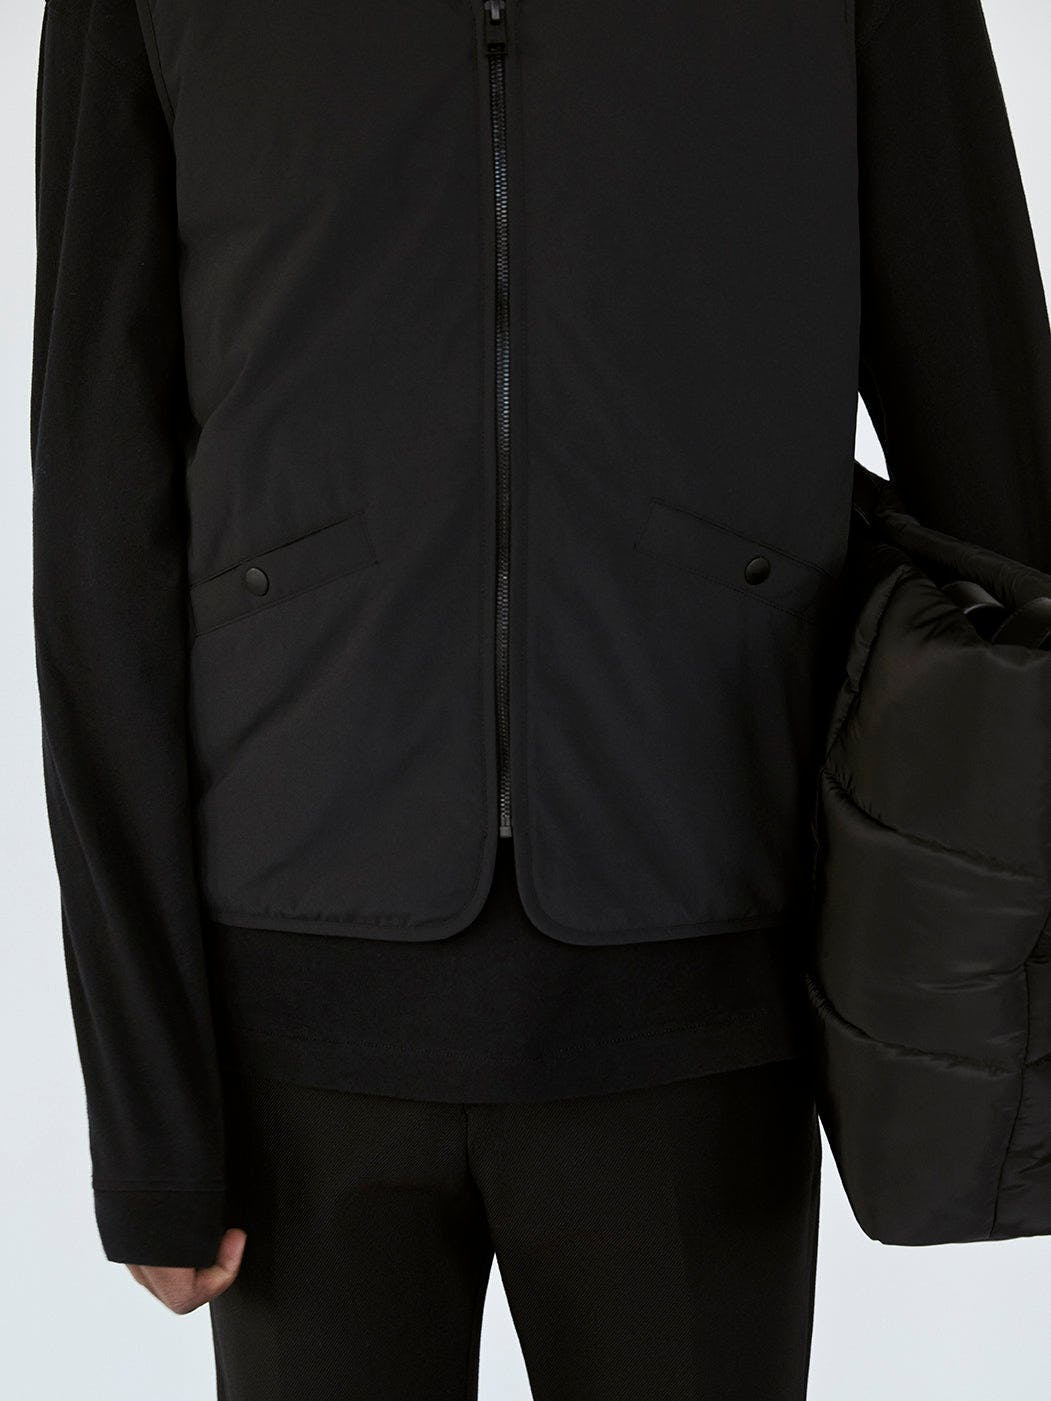 gillet detail view